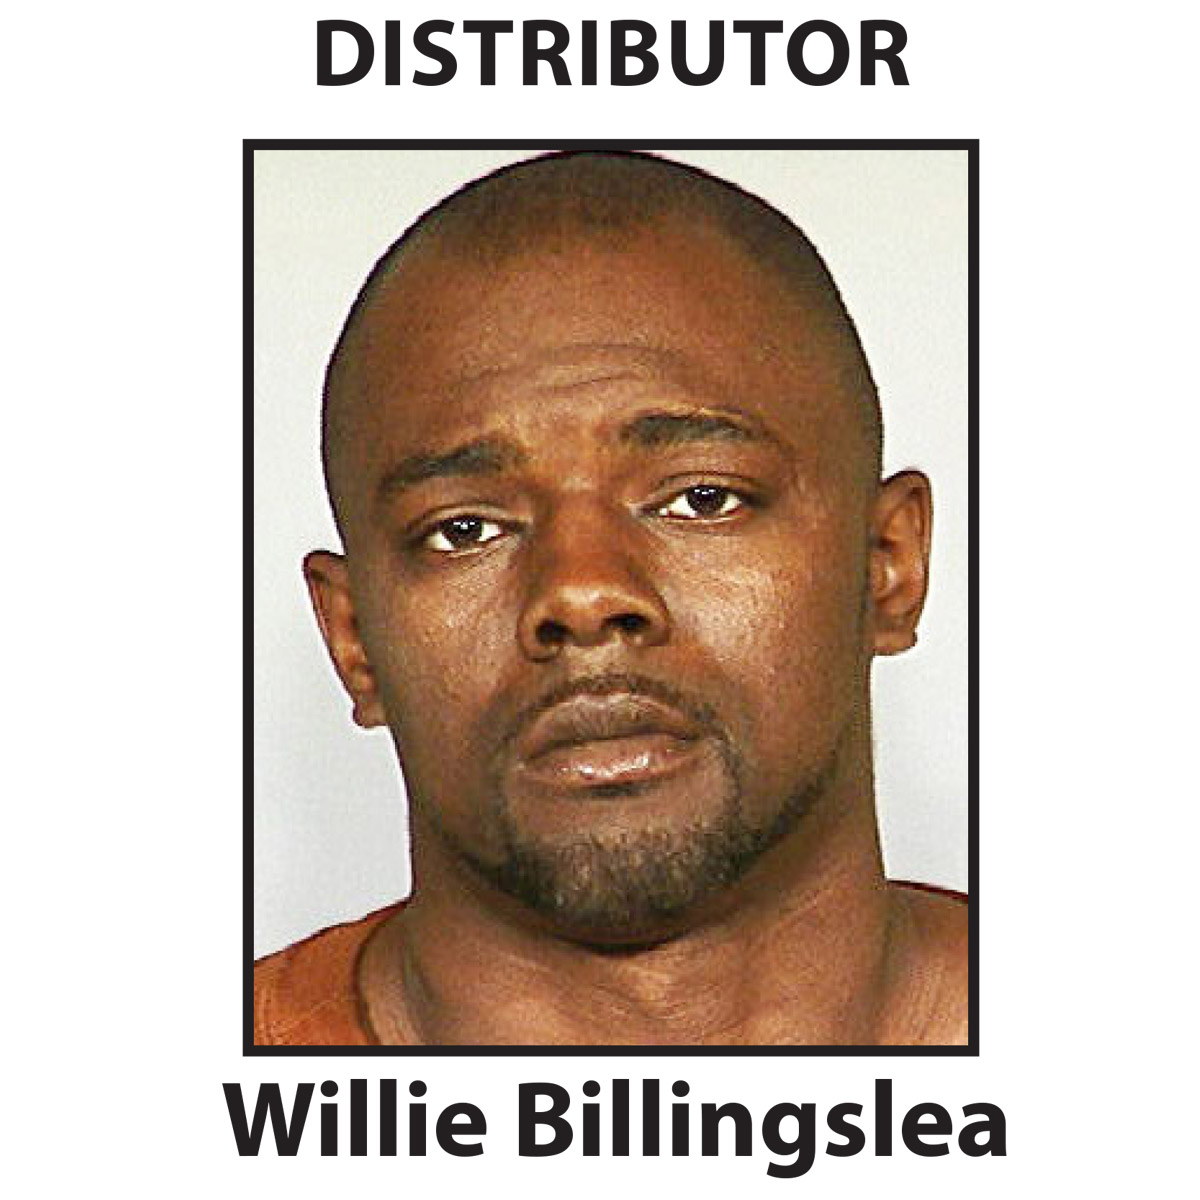 <div class='meta'><div class='origin-logo' data-origin='none'></div><span class='caption-text' data-credit=''>Willie Billingslea</span></div>